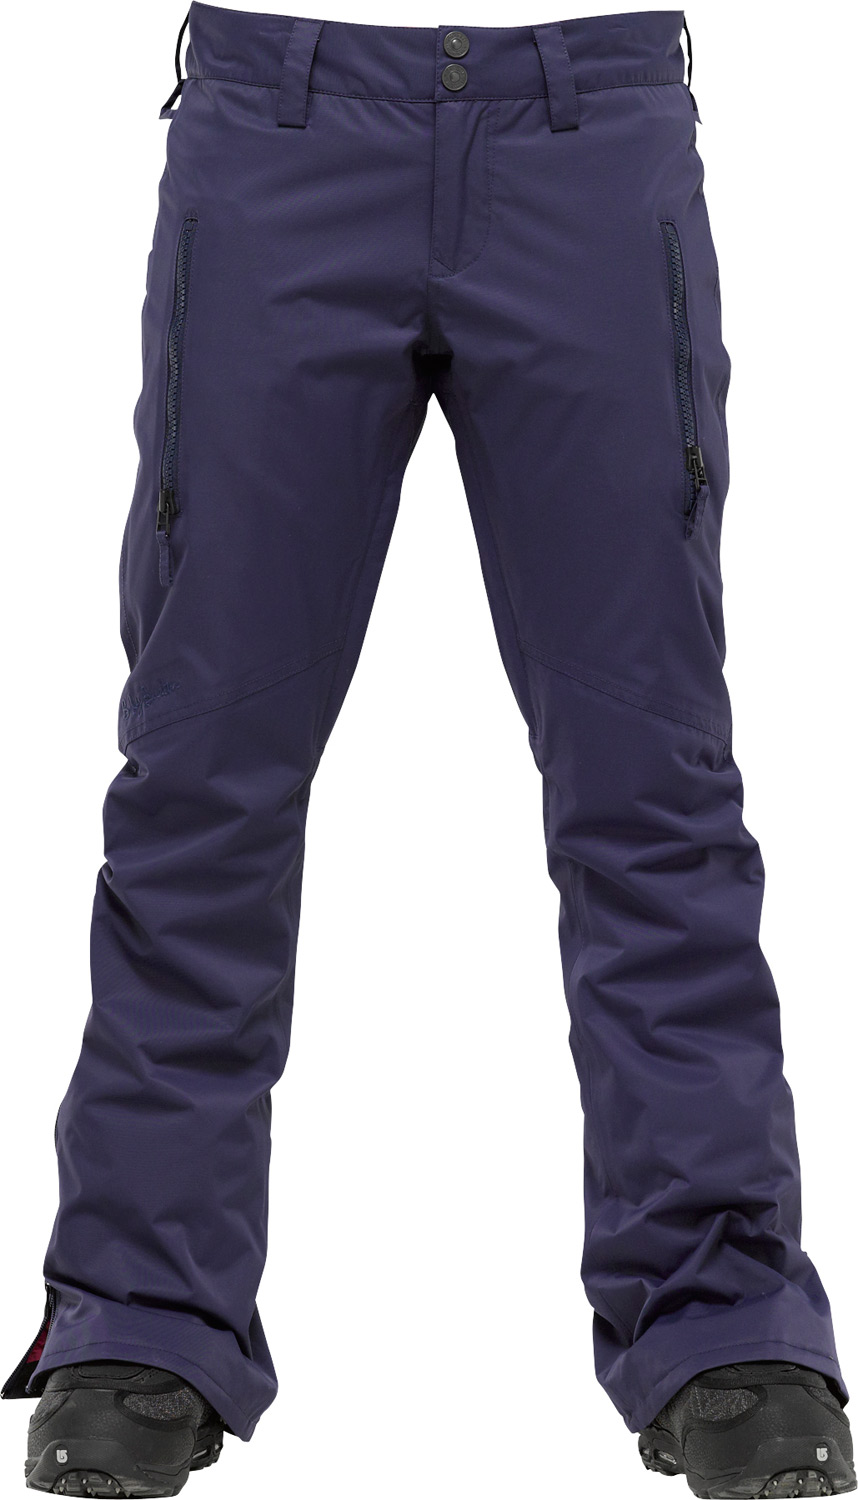 Snowboard Accentuate your assets, flattering fit keeps you committed to all your shred desires.Key Features of the Burton B By Burton Gemma Snowboard Pants: 10,000mm Waterproof 10,000g Breathability DRYRIDE Durashell 2-Layer Coated Nylon Full Dull Twill Fabric Slim Fit Satin Lining Fully Taped Seams Jacket-to-Pant Interface Thigh Pockets Thigh Vents Fully Taped Seams NEW Expandable Boot Gaiter Integrated Waist Adjustment Reinforced Hems Universal Pant Features:DRYRIDE Fabrication with DWR Coating Microfleece-Lined Handwarmer Pockets Articulated Knees Engineered Lining Bomber YKK Zippers Jacket-to-Pant Interface Taped Seams Boot Gaiter with Gripper Elastic Cuffs Pass Pocket/Ticket O-Ring Butt Pockets Belt Loops Microfleece-Lined Fly and Waistband Ghetto Slits - $111.95